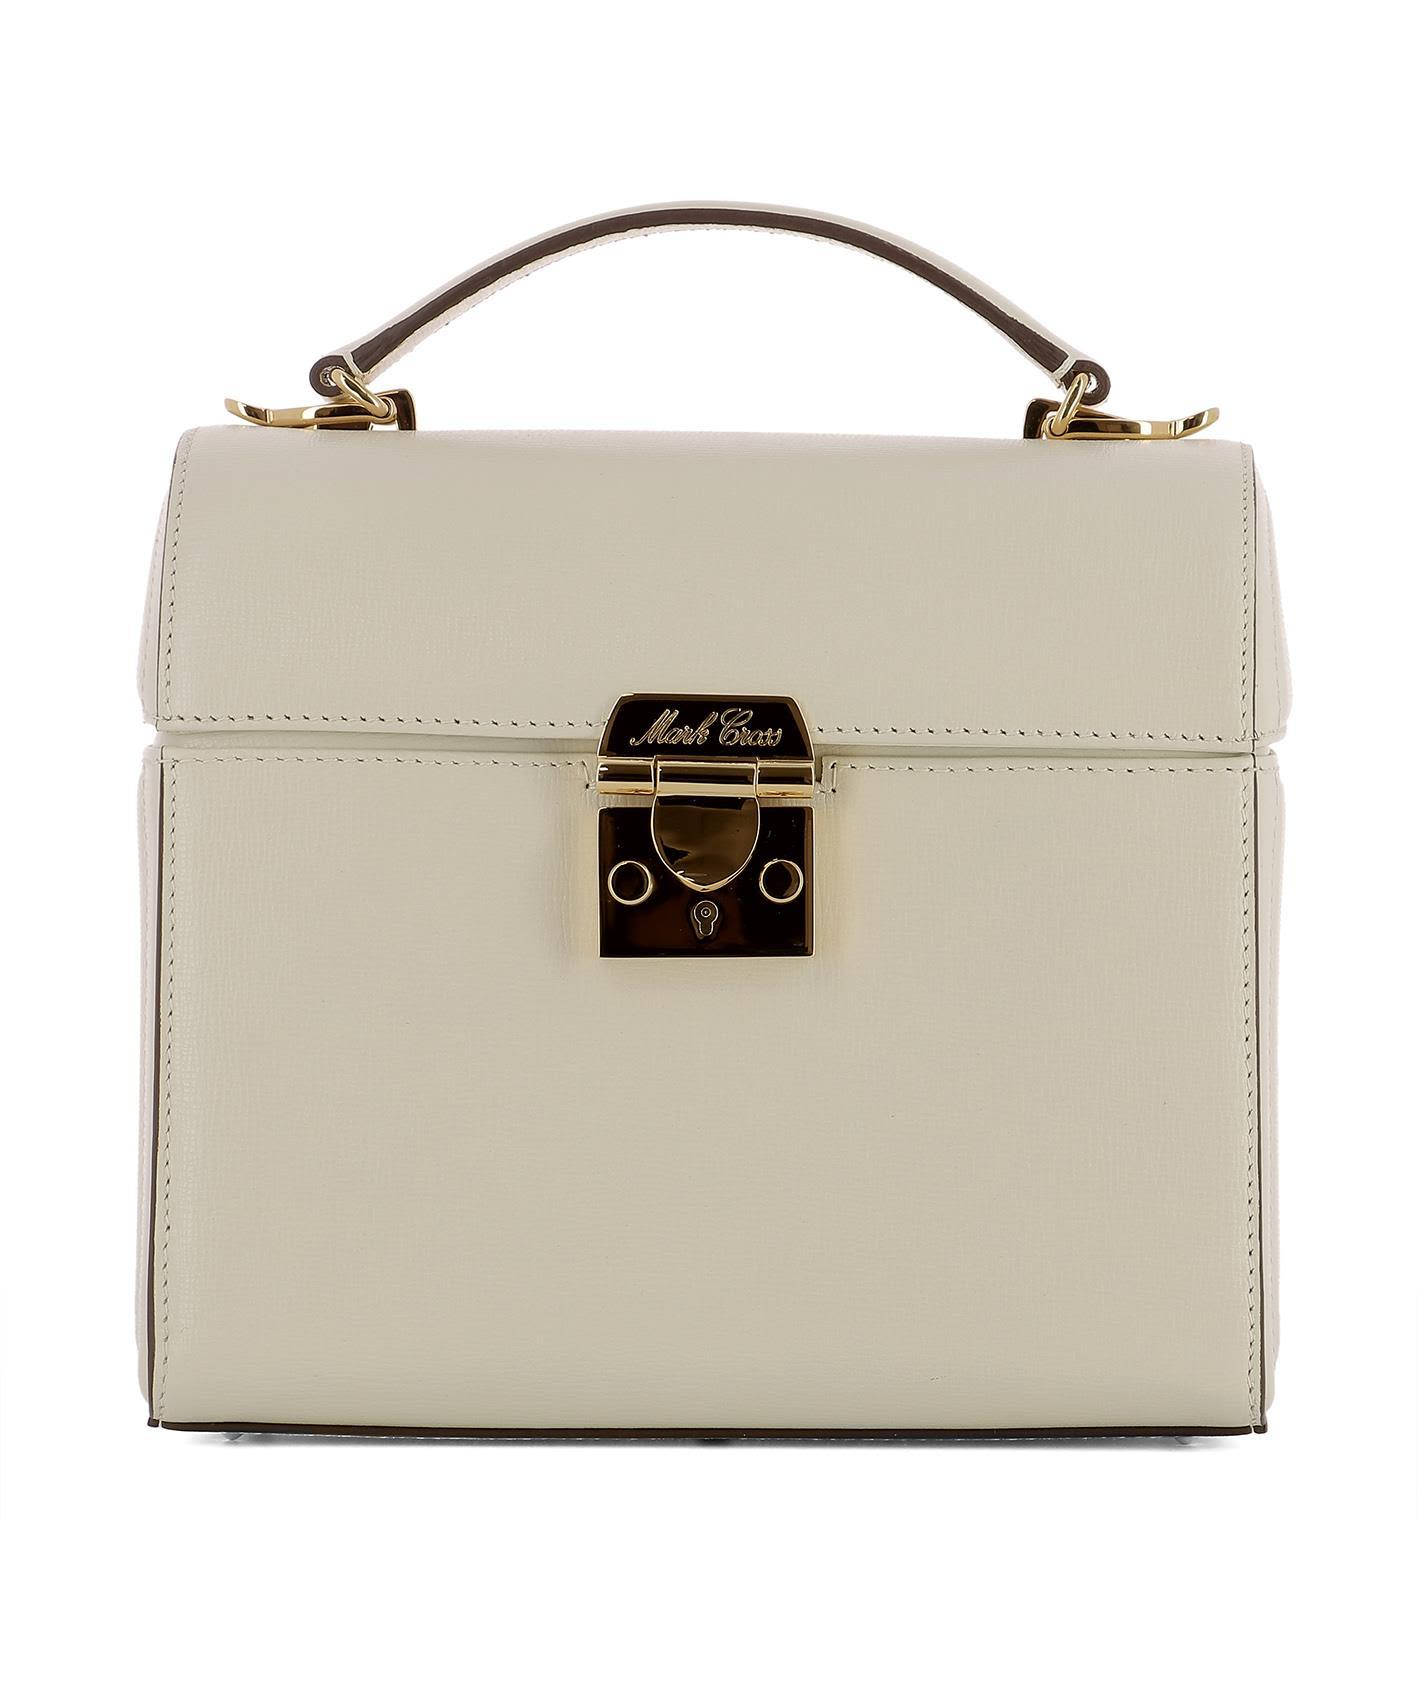 Mark Cross Ivory Leather Handle Bag In White